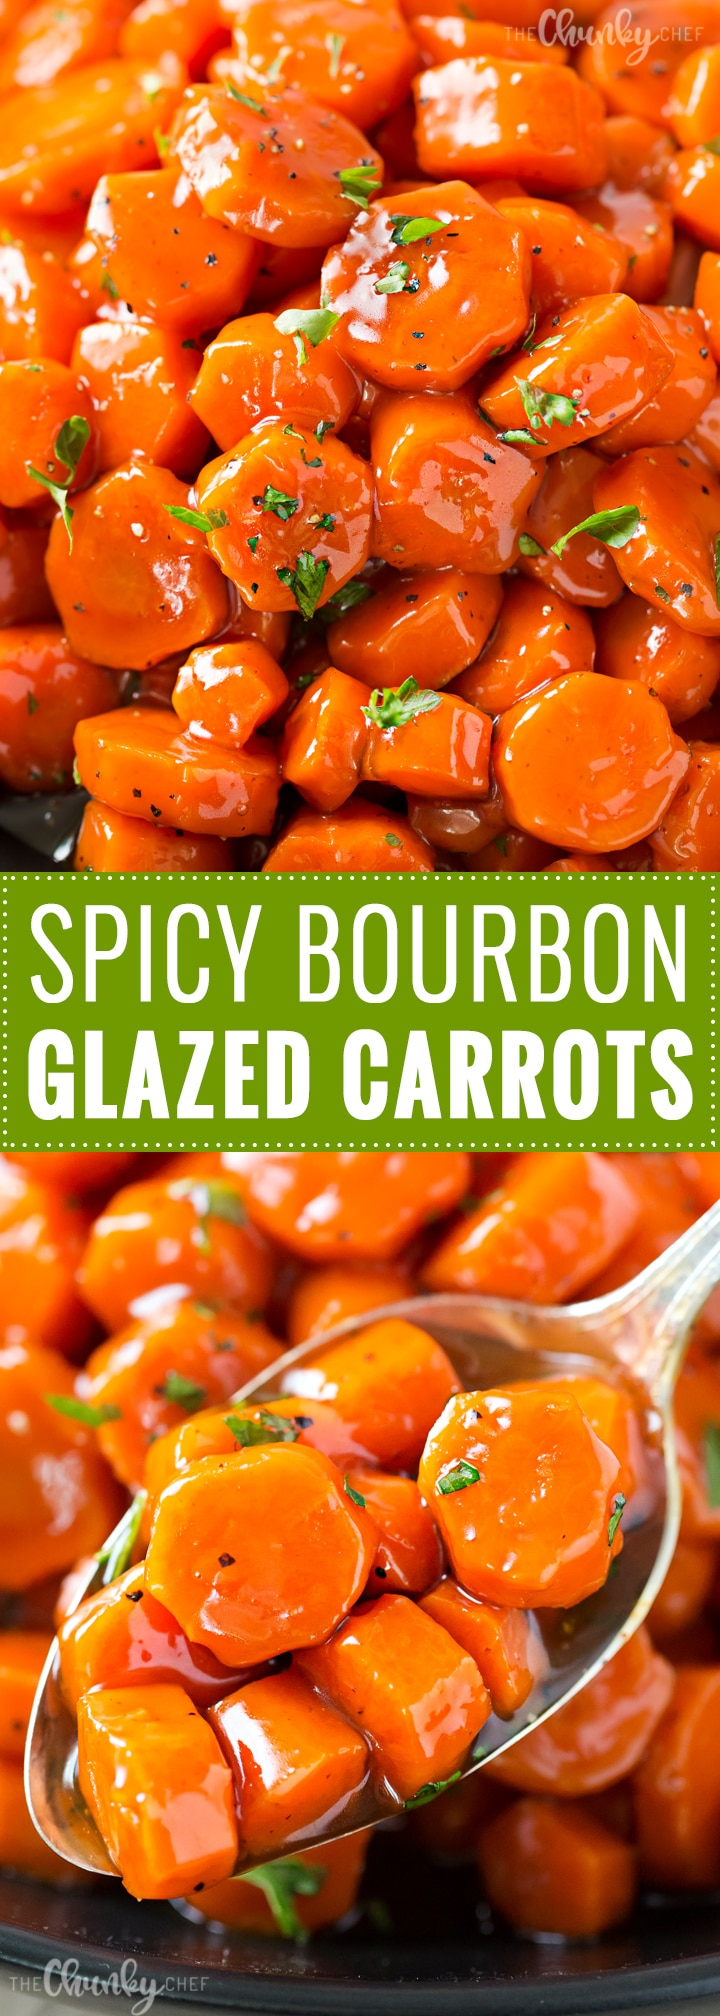 Spicy Bourbon Glazed Carrots | You'll love these easy glazed carrots made with bourbon, brown sugar and cayenne! They're perfect for a weeknight dinner or holiday feast! | http://thechunkychef.com